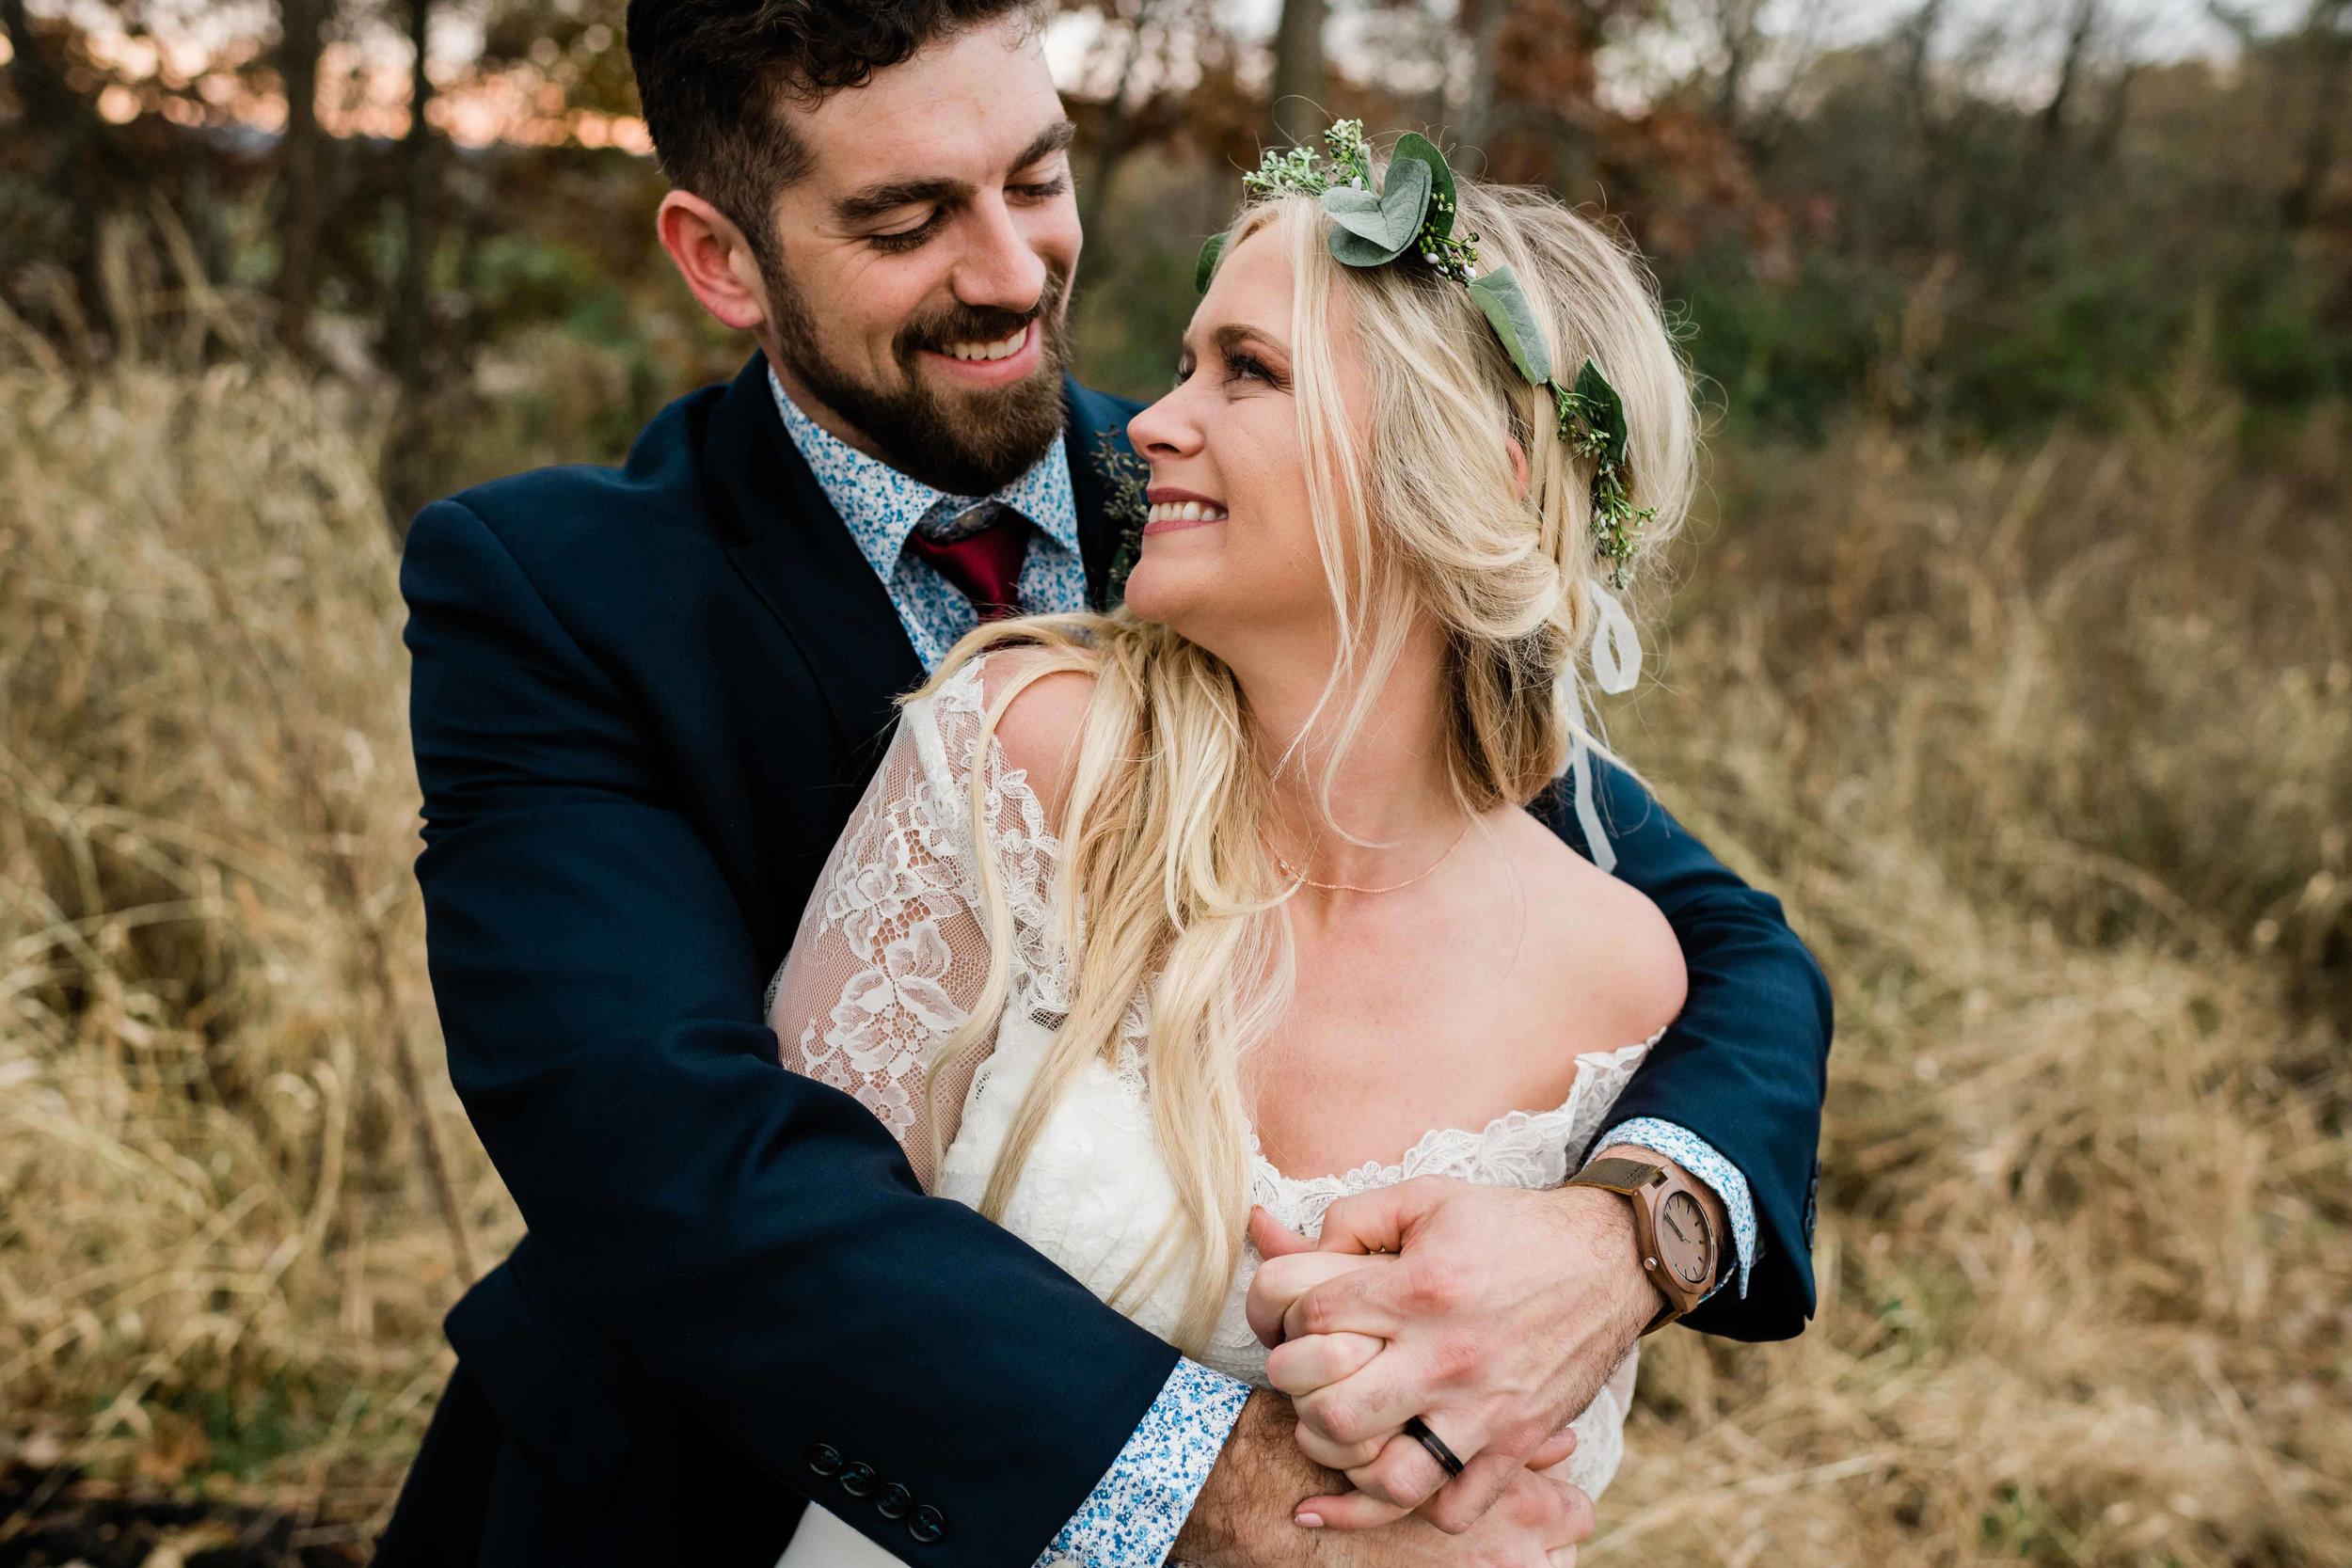 Groom wraps his arm around bride from behind